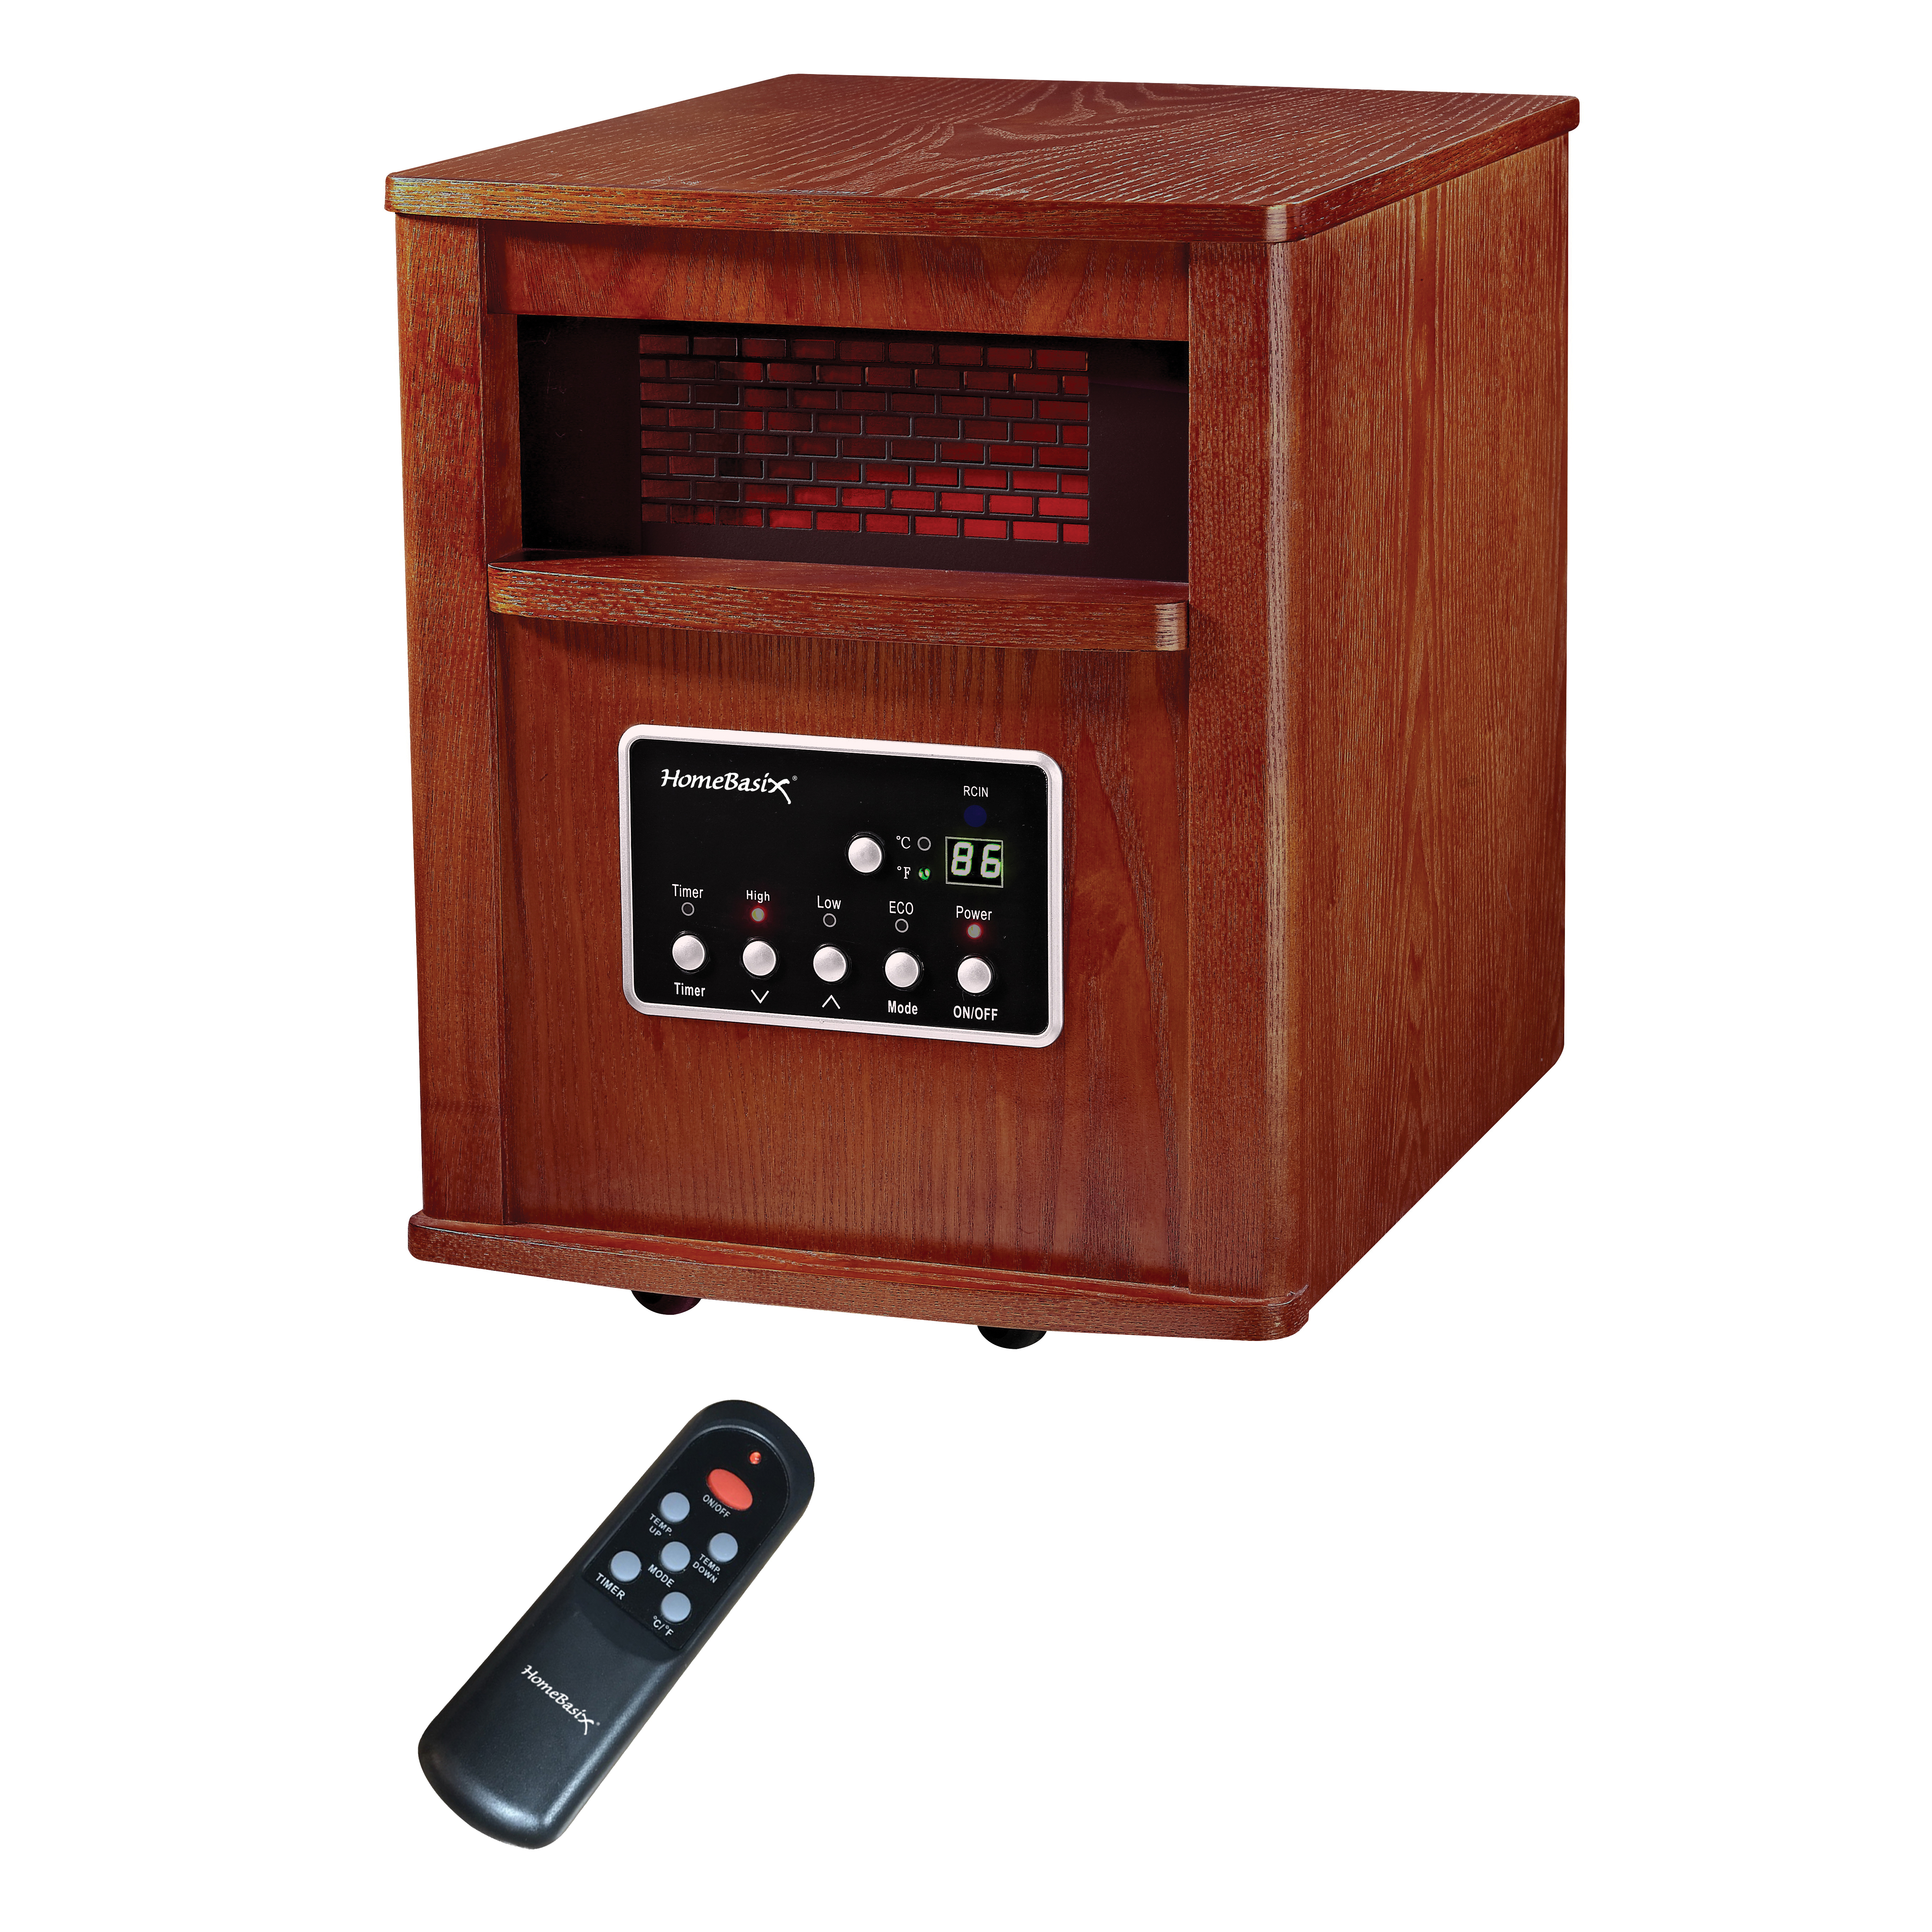 Picture of PowerZone WH-96H Infrared Quartz Wood Cabinet Heater with Remote Control, 12.5 A, 120 V, ECO/1000/1500W W, Cherry